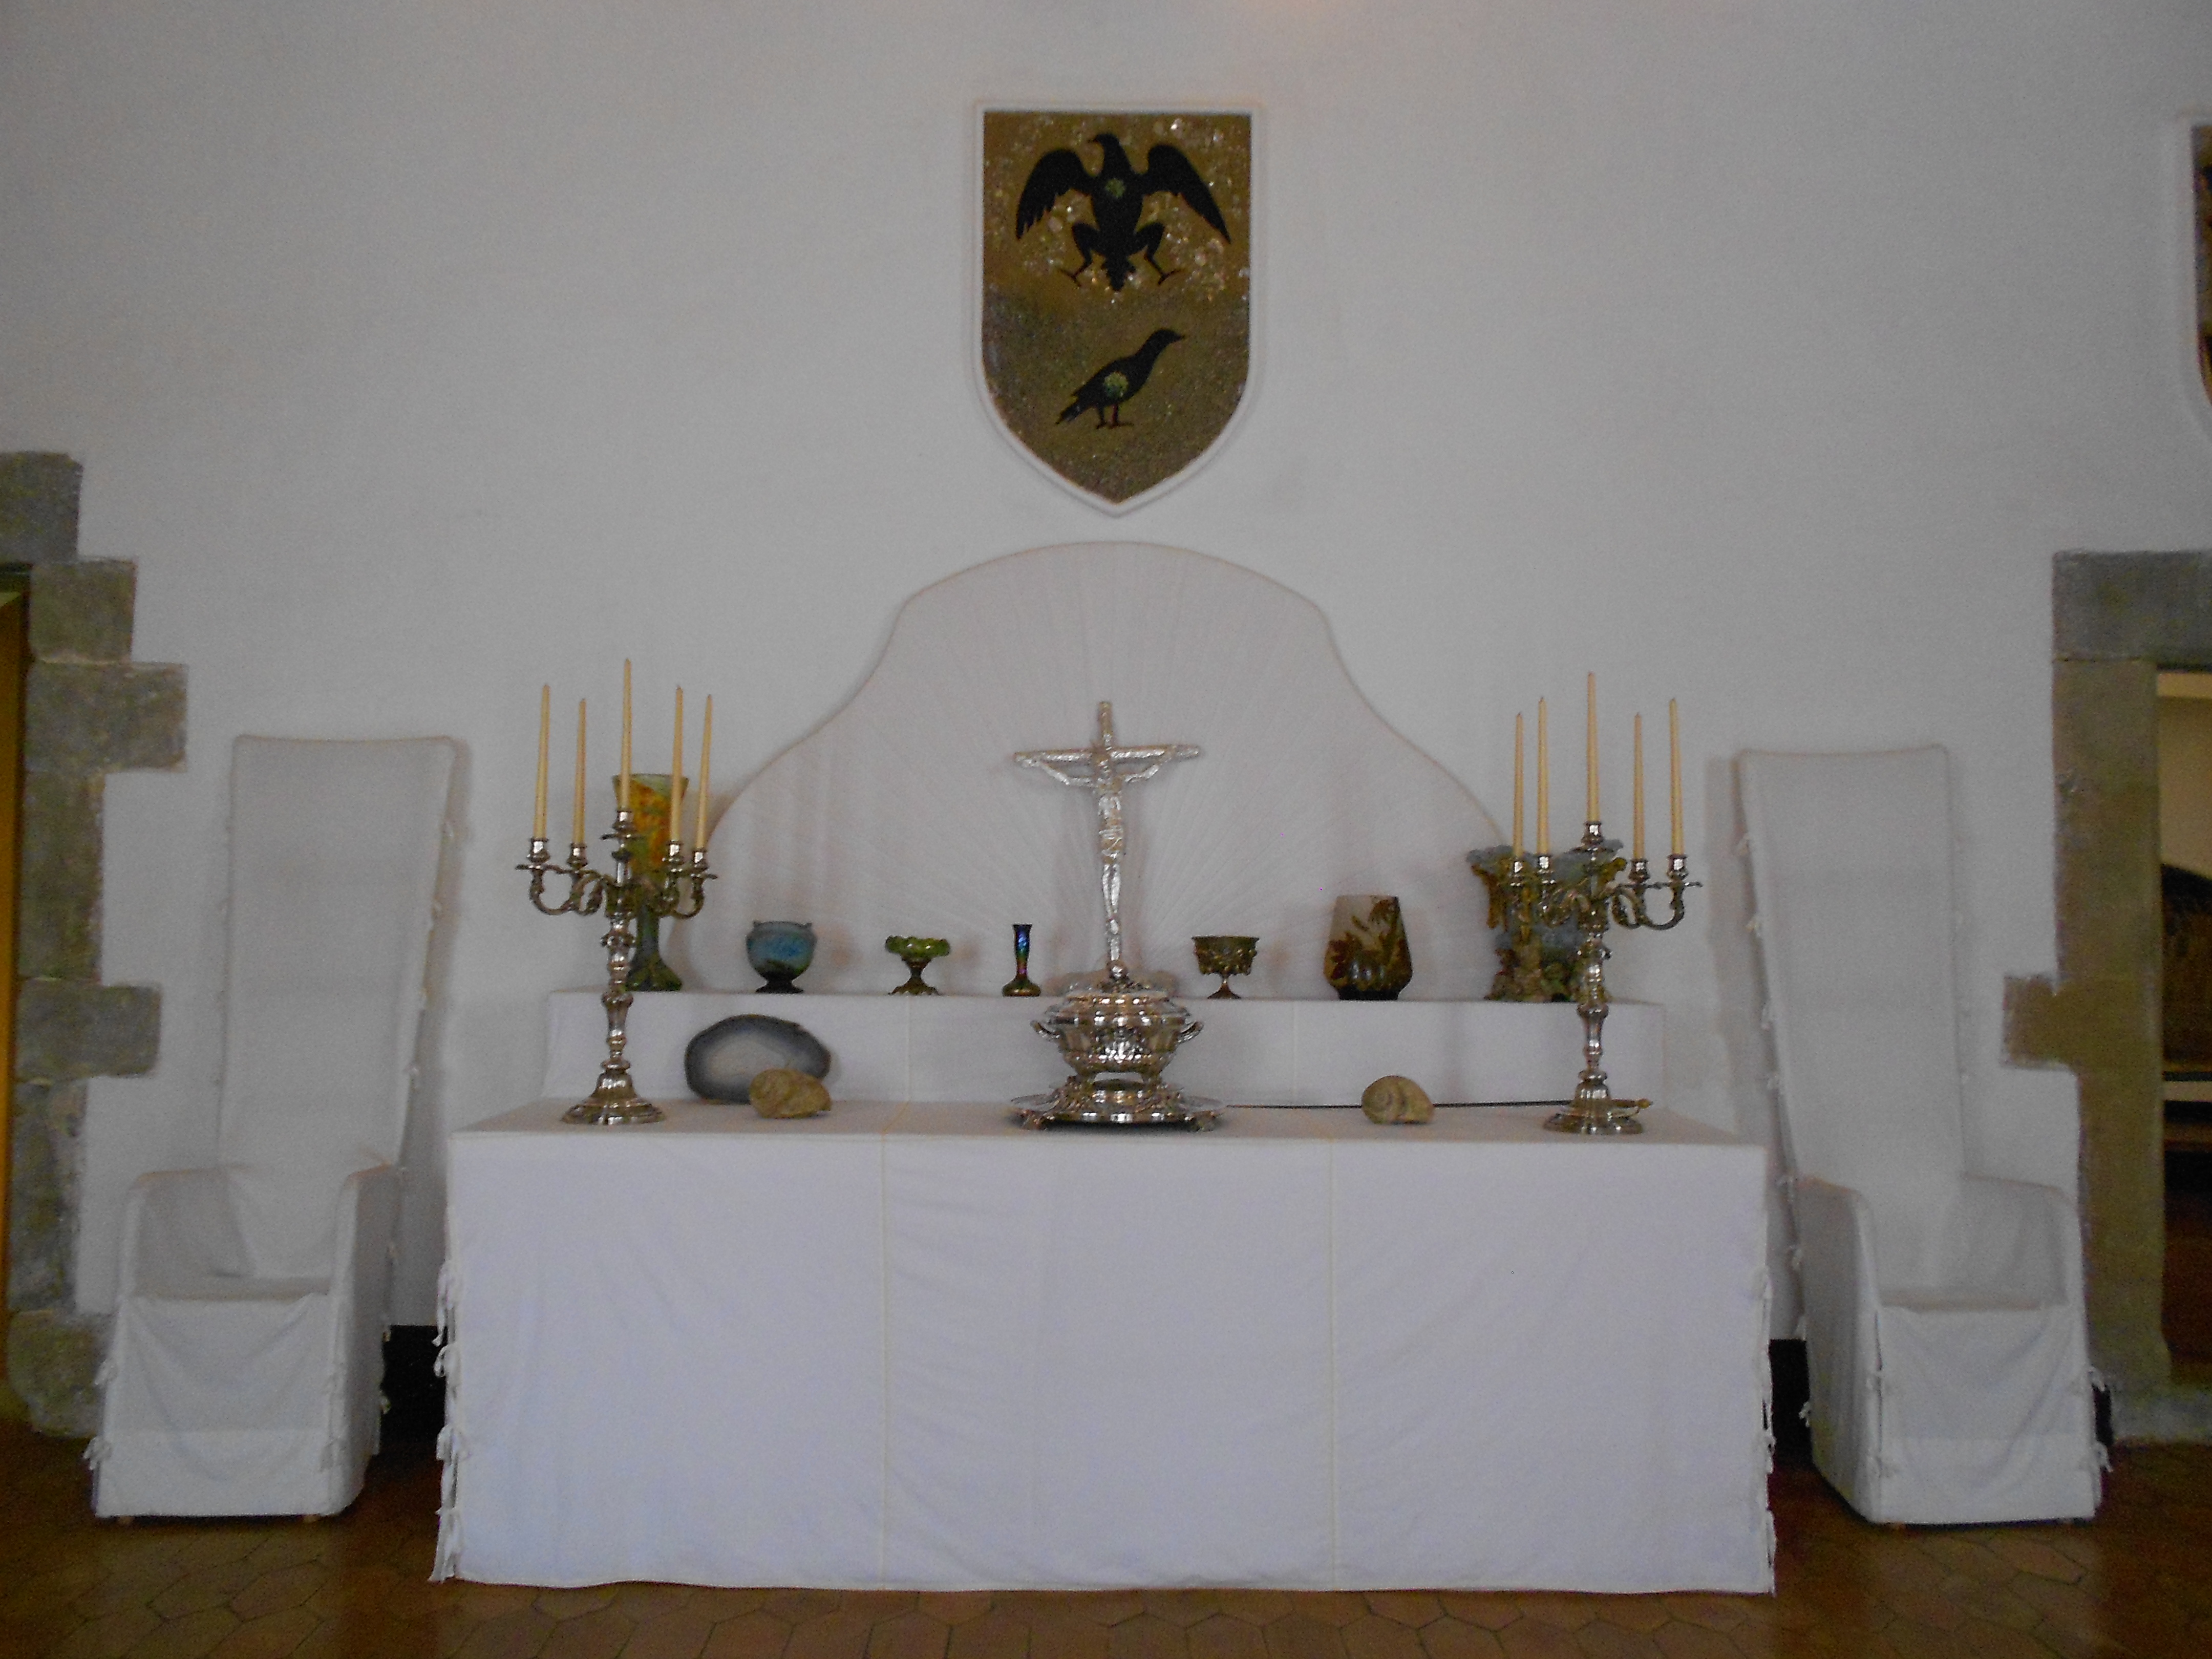 Who doesn't need an altar?